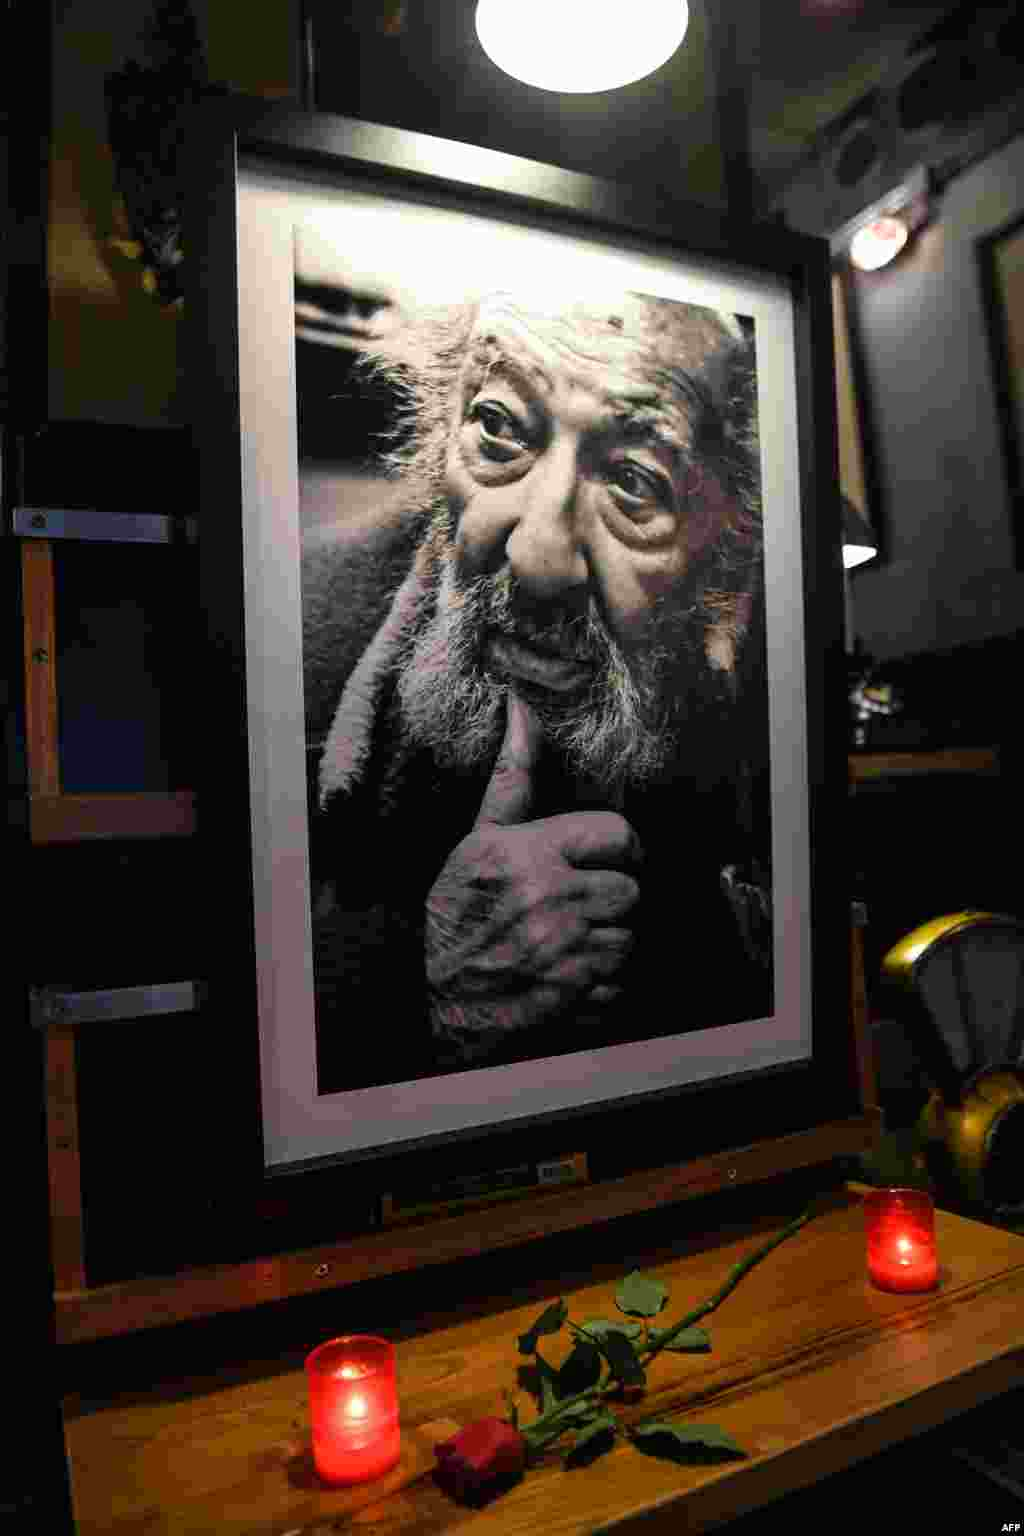 Candles and a rose have been put next to a portrait of late Turkish photographer Ara Guler at Ara Cafe in Istanbul. The legendary photographer, famed for iconic images of Istanbul which captured almost three quarters of a century of the city's history, died aged 90 on Oct. 17, 2018.